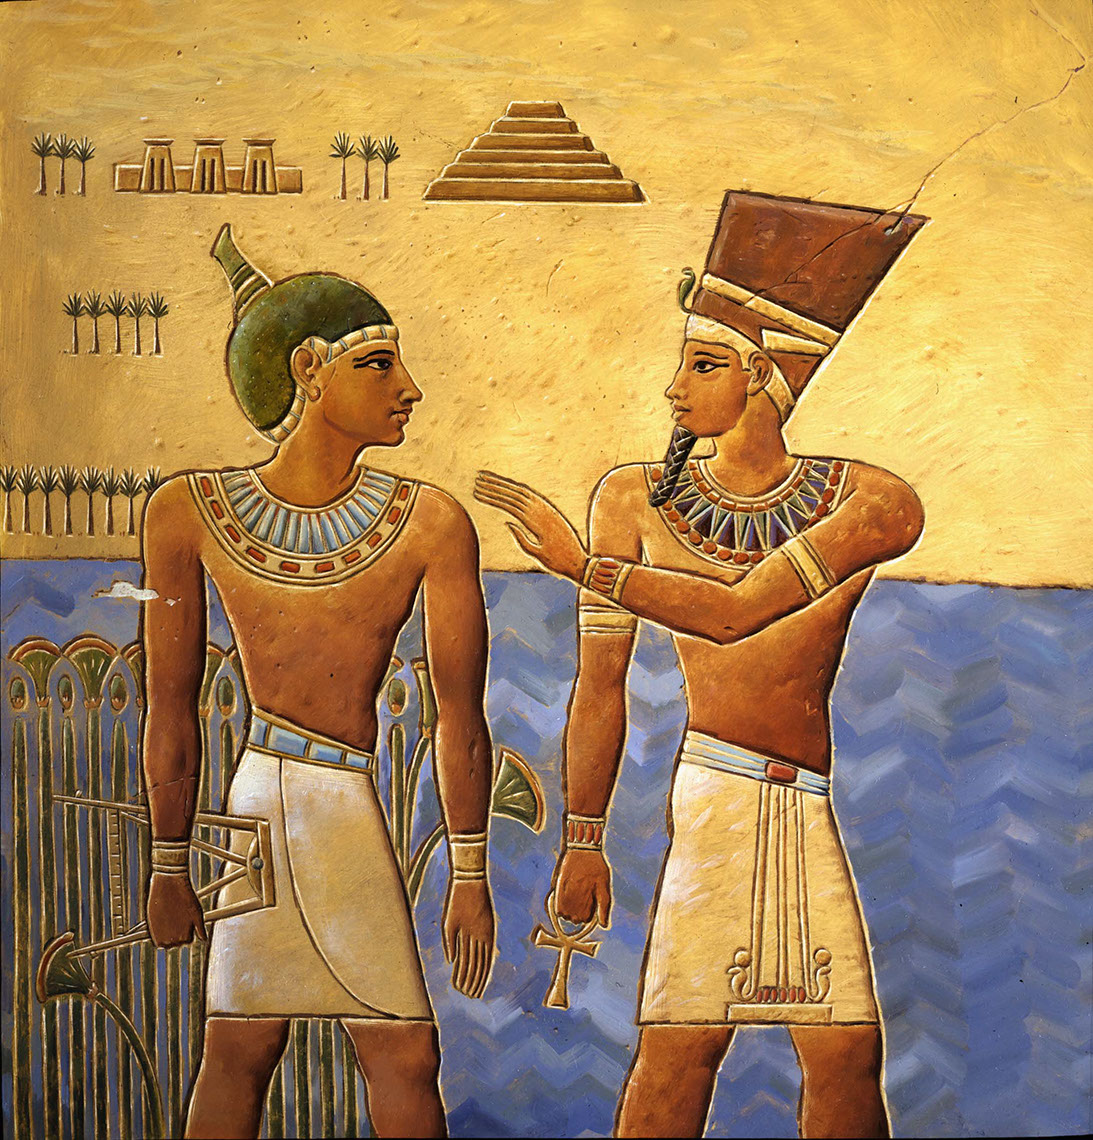 illustration-Cartoons and Characters_Egyptians in Hieroglyphics-Mike Jaroszko